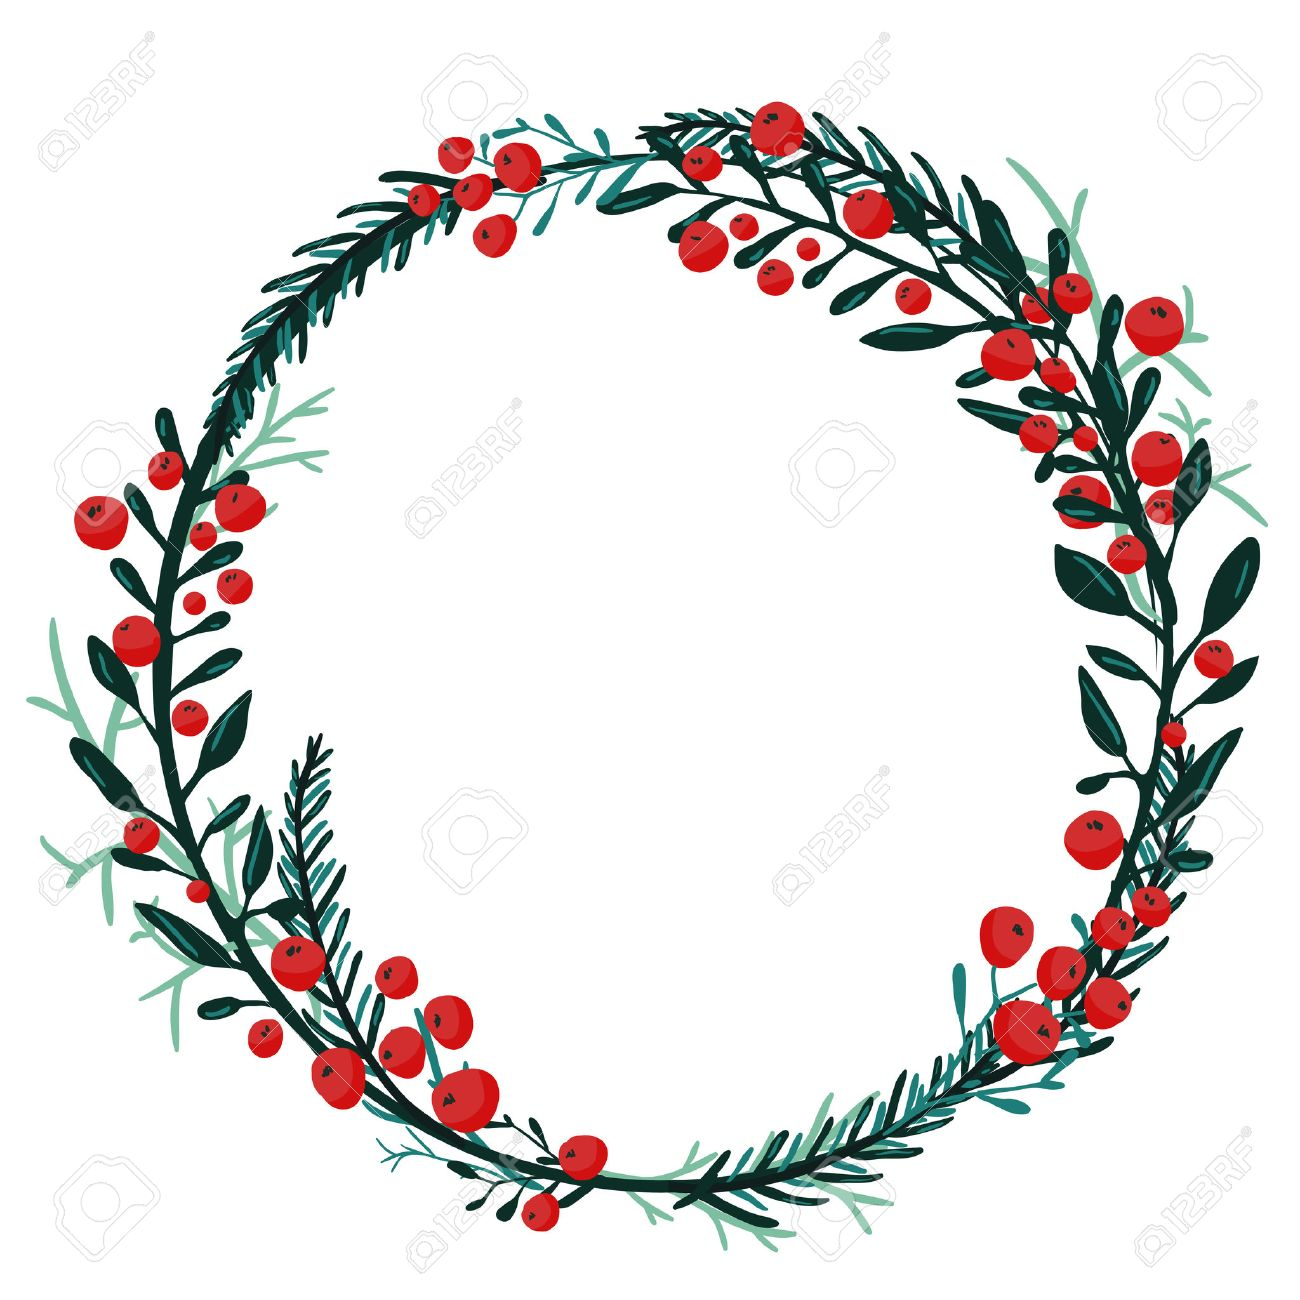 Round frame with decorative branch vector illustration stock - Hand Drawn Wreath With Red Berries And Fir Branches Round Frame For Christmas Cards And